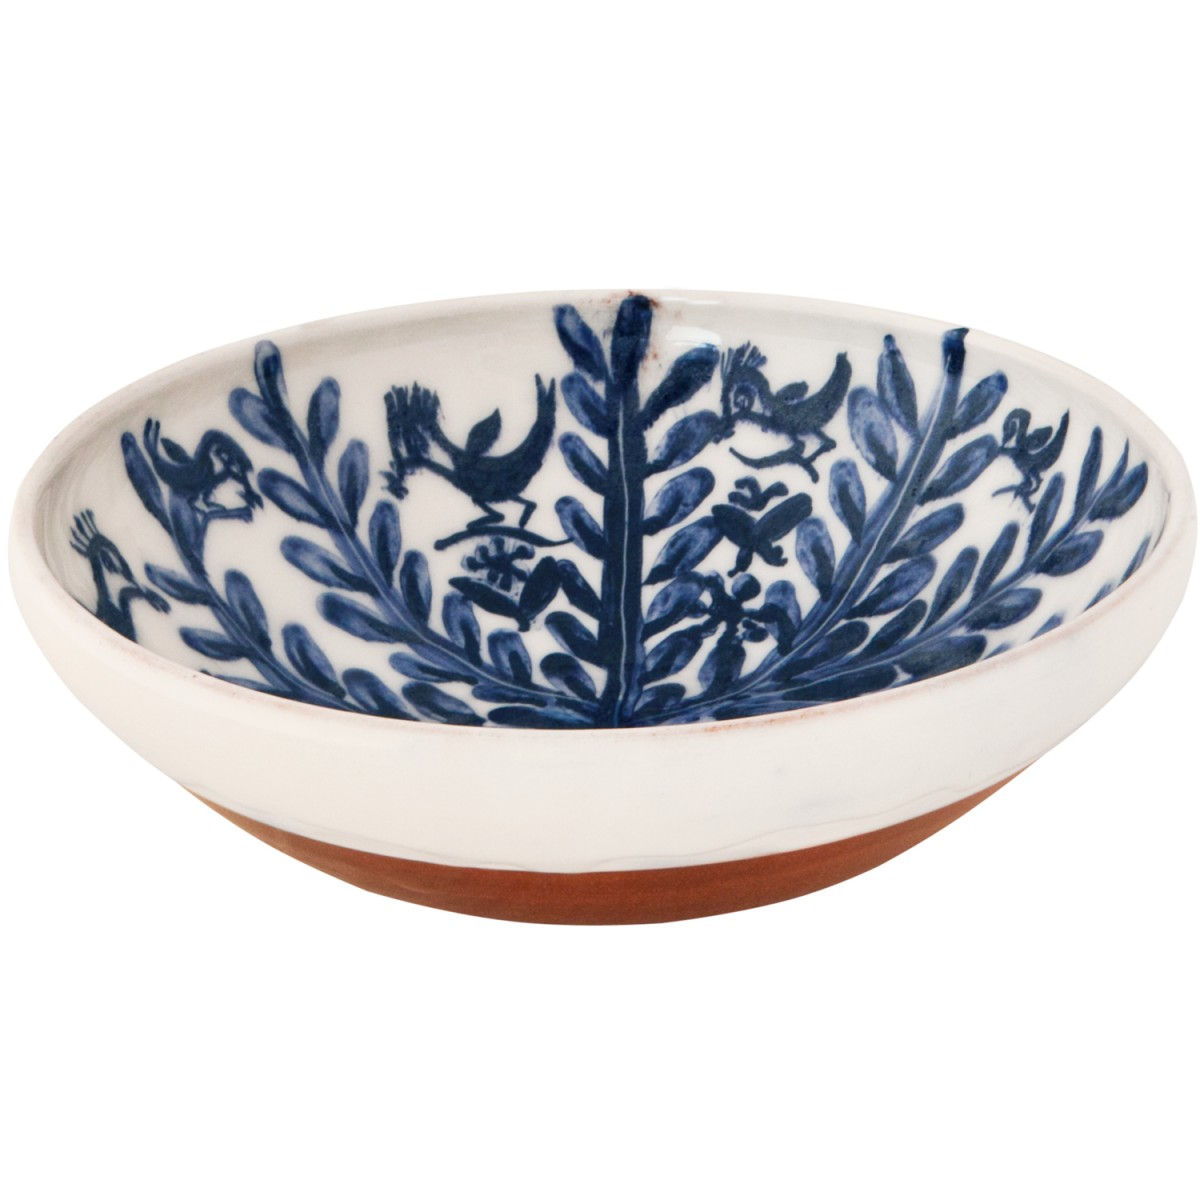 Large Decorative Bowls for Tables | Handmade Plant and Birds-1